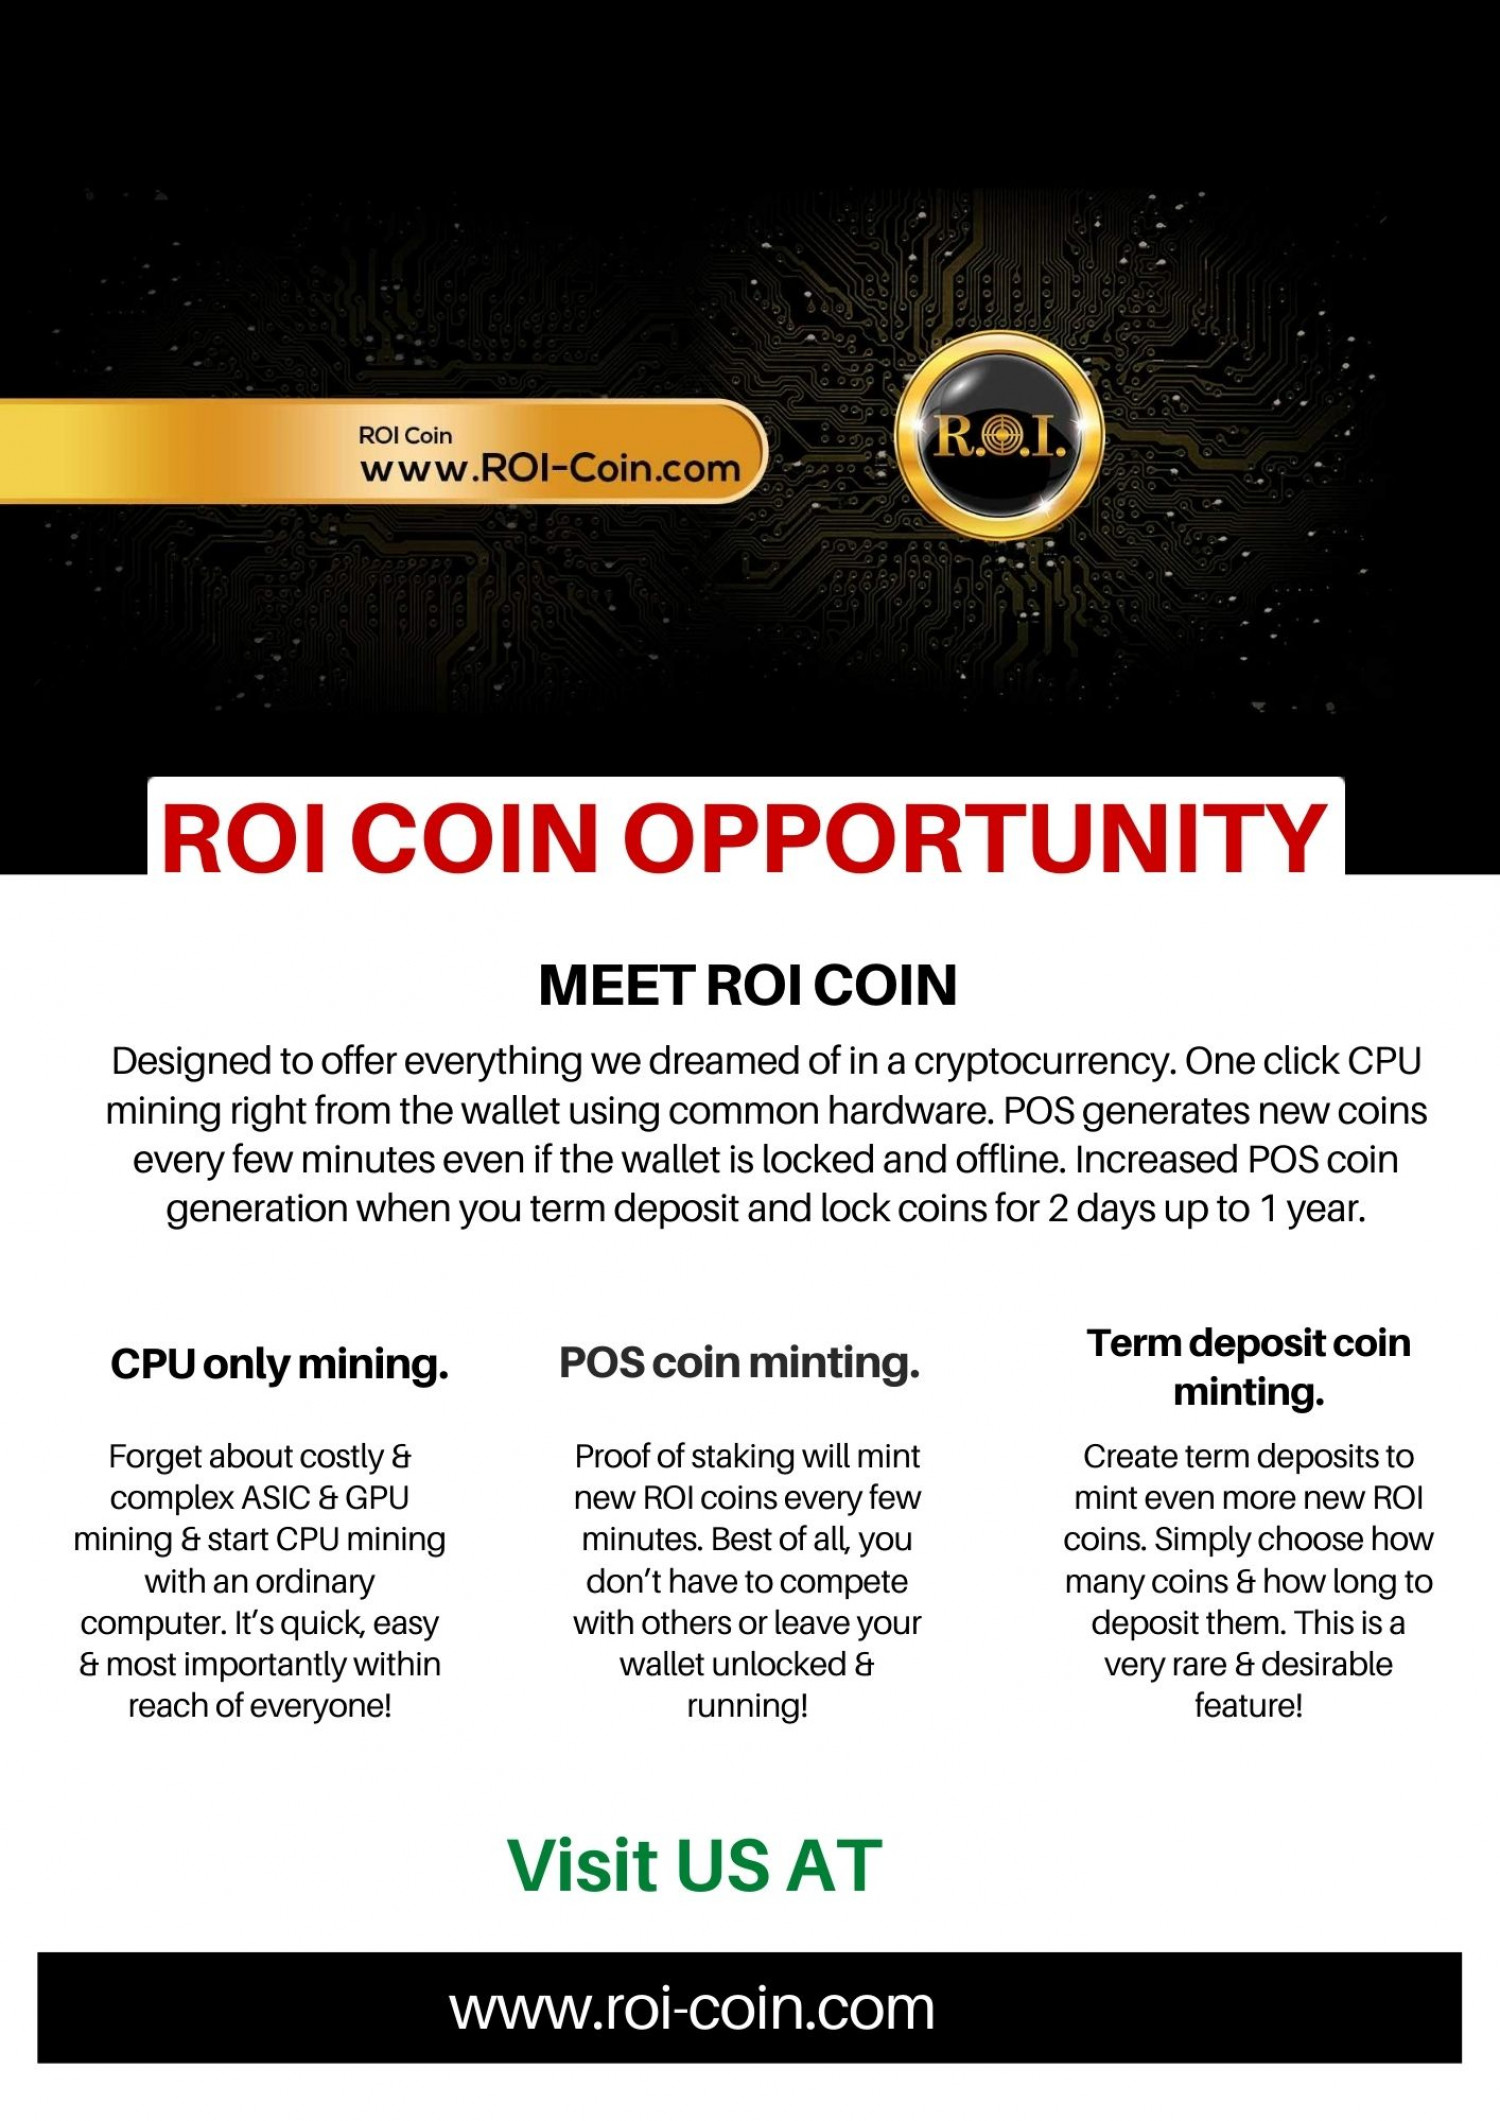 ROI Coin Opportunity Infographic